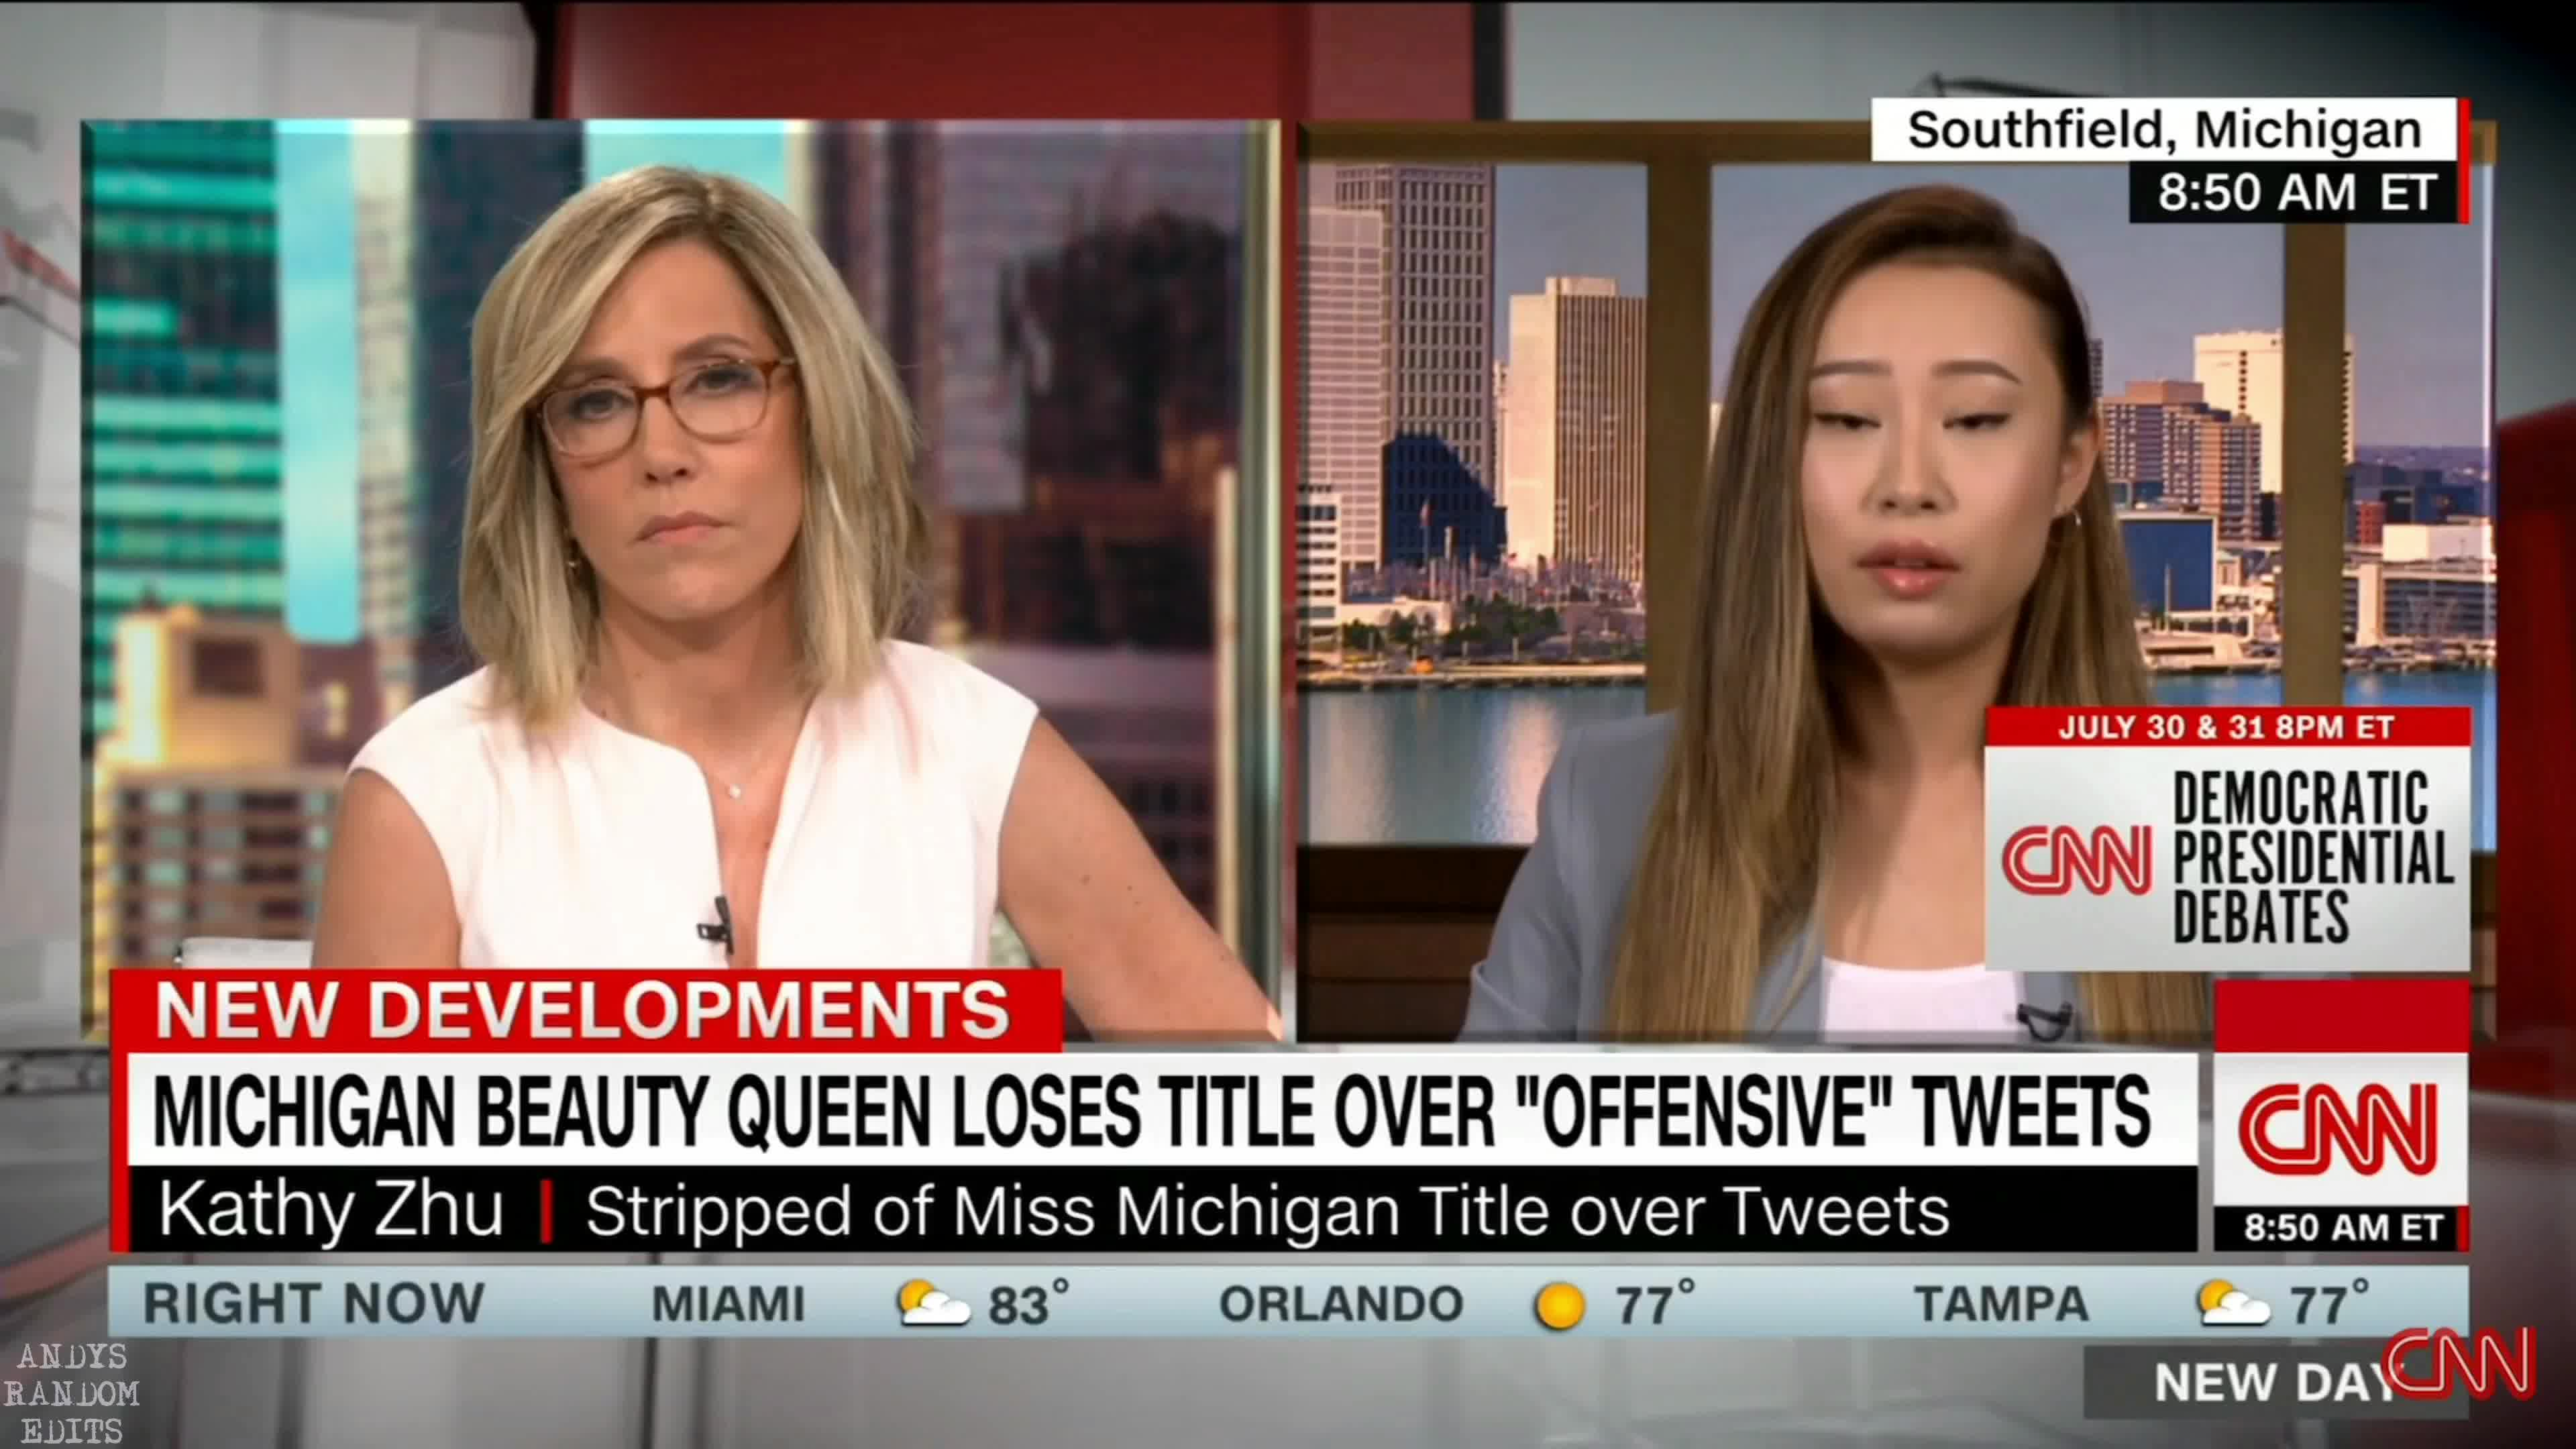 KATHY ZHU ON CNN